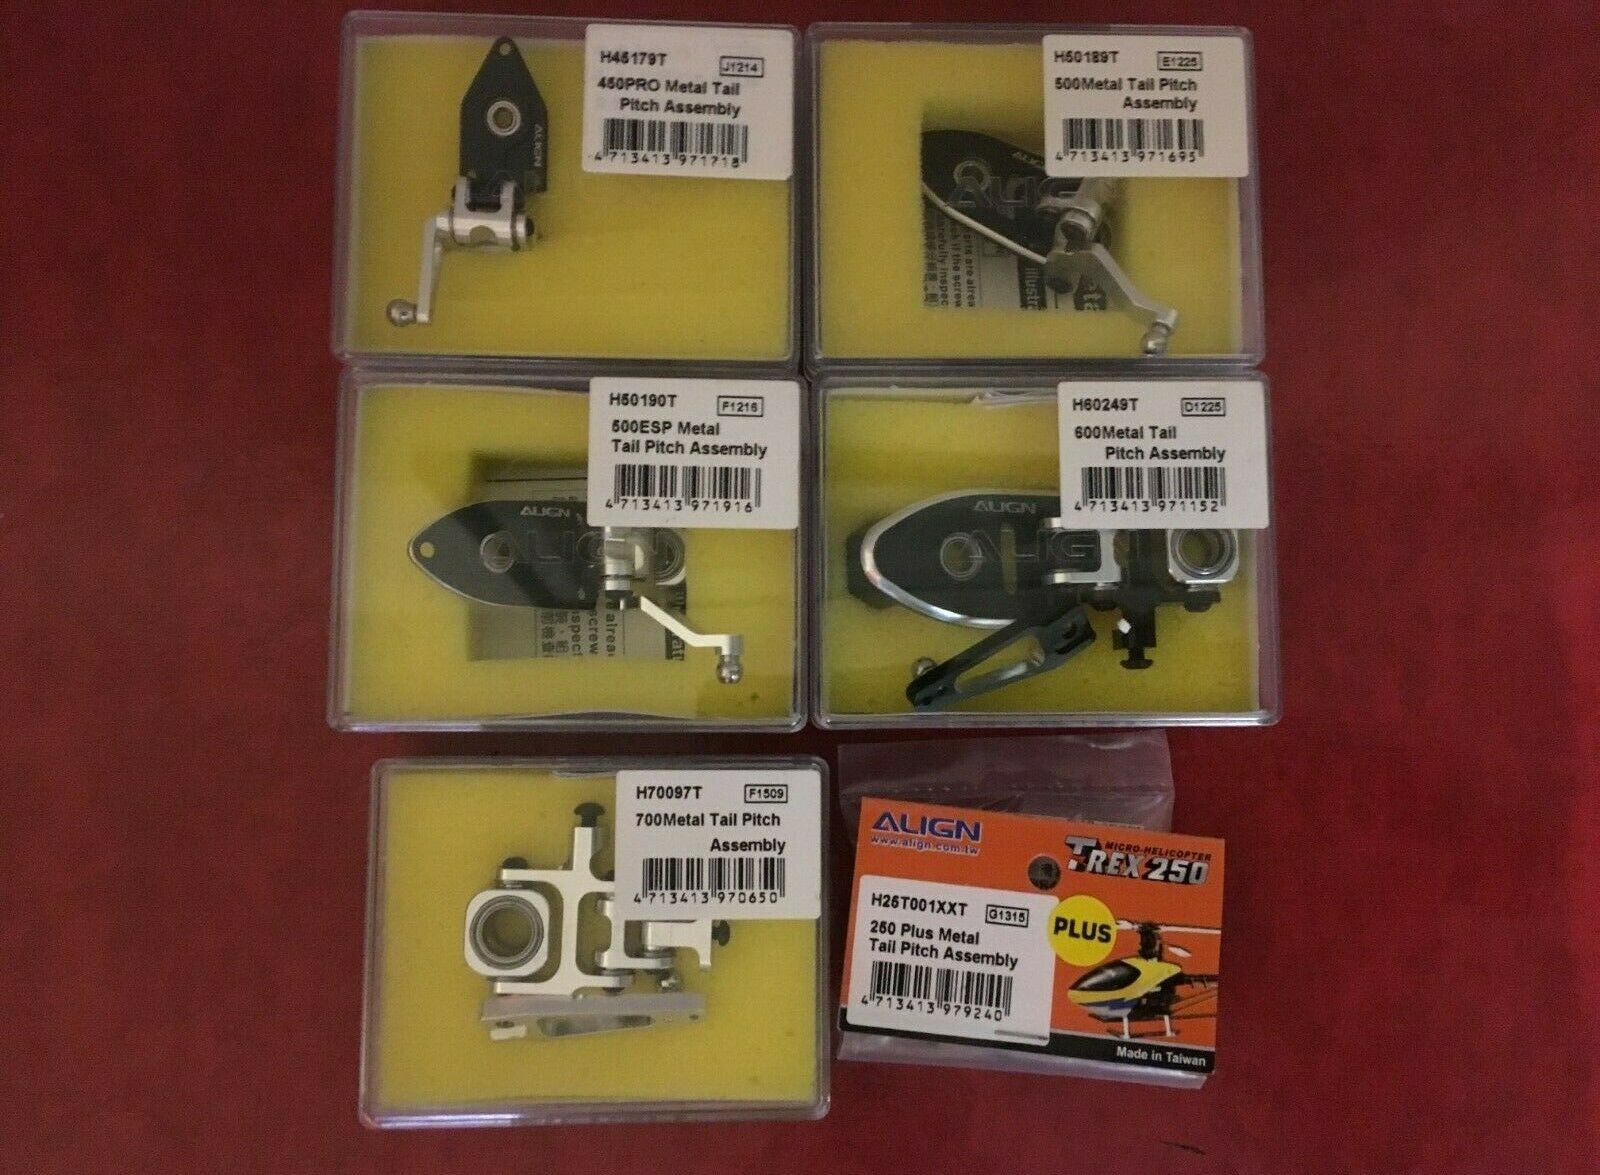 Align Trex Tail Pitch Assembley - Choice of models available - RC Heli Spares